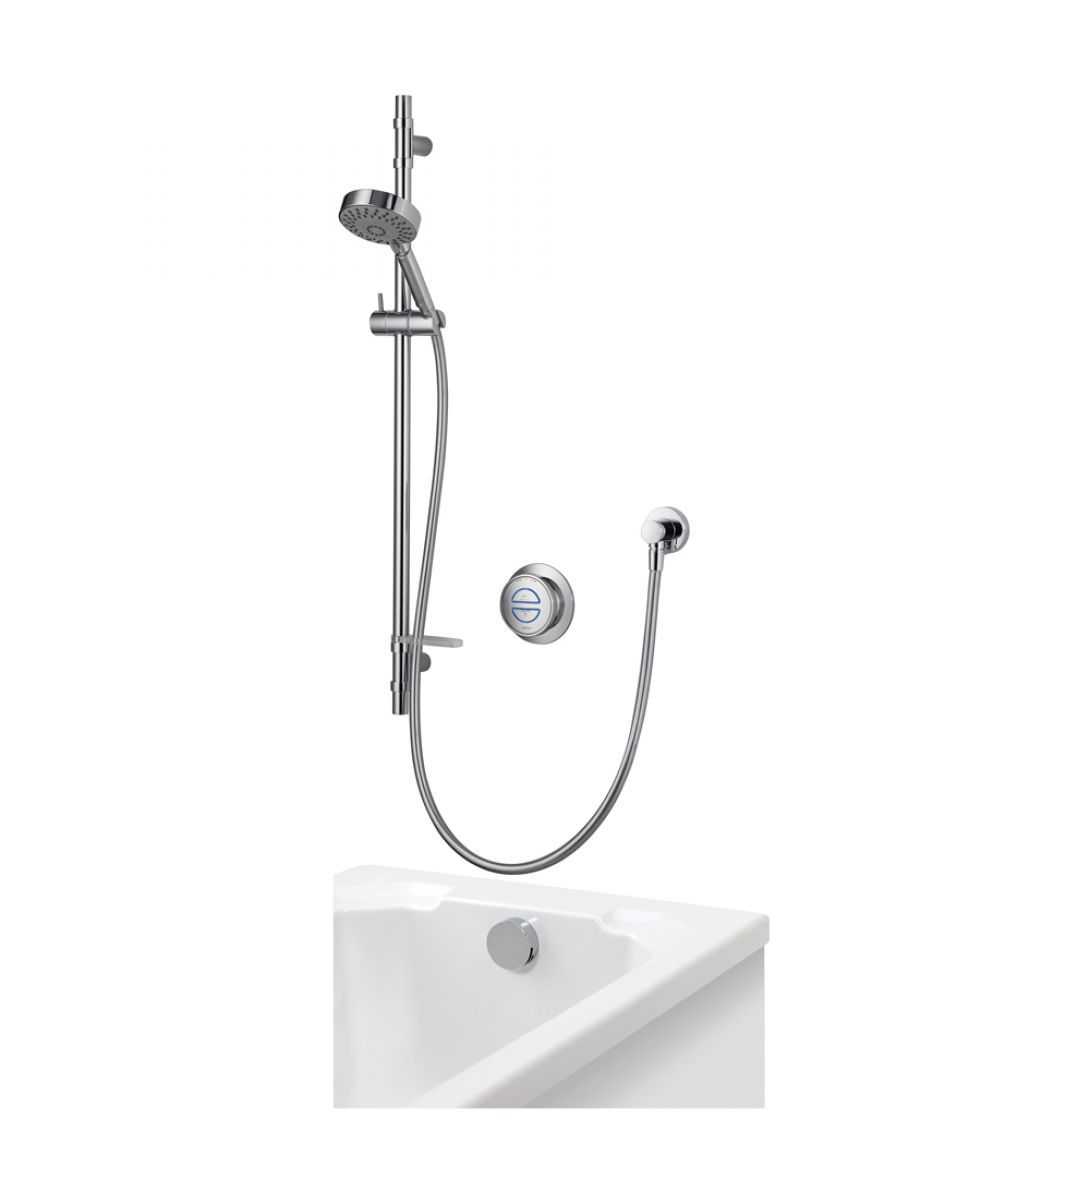 bathroom brooklyn new faucets faucet york tub universal danze ceramic shower item tiles sirius with single handle